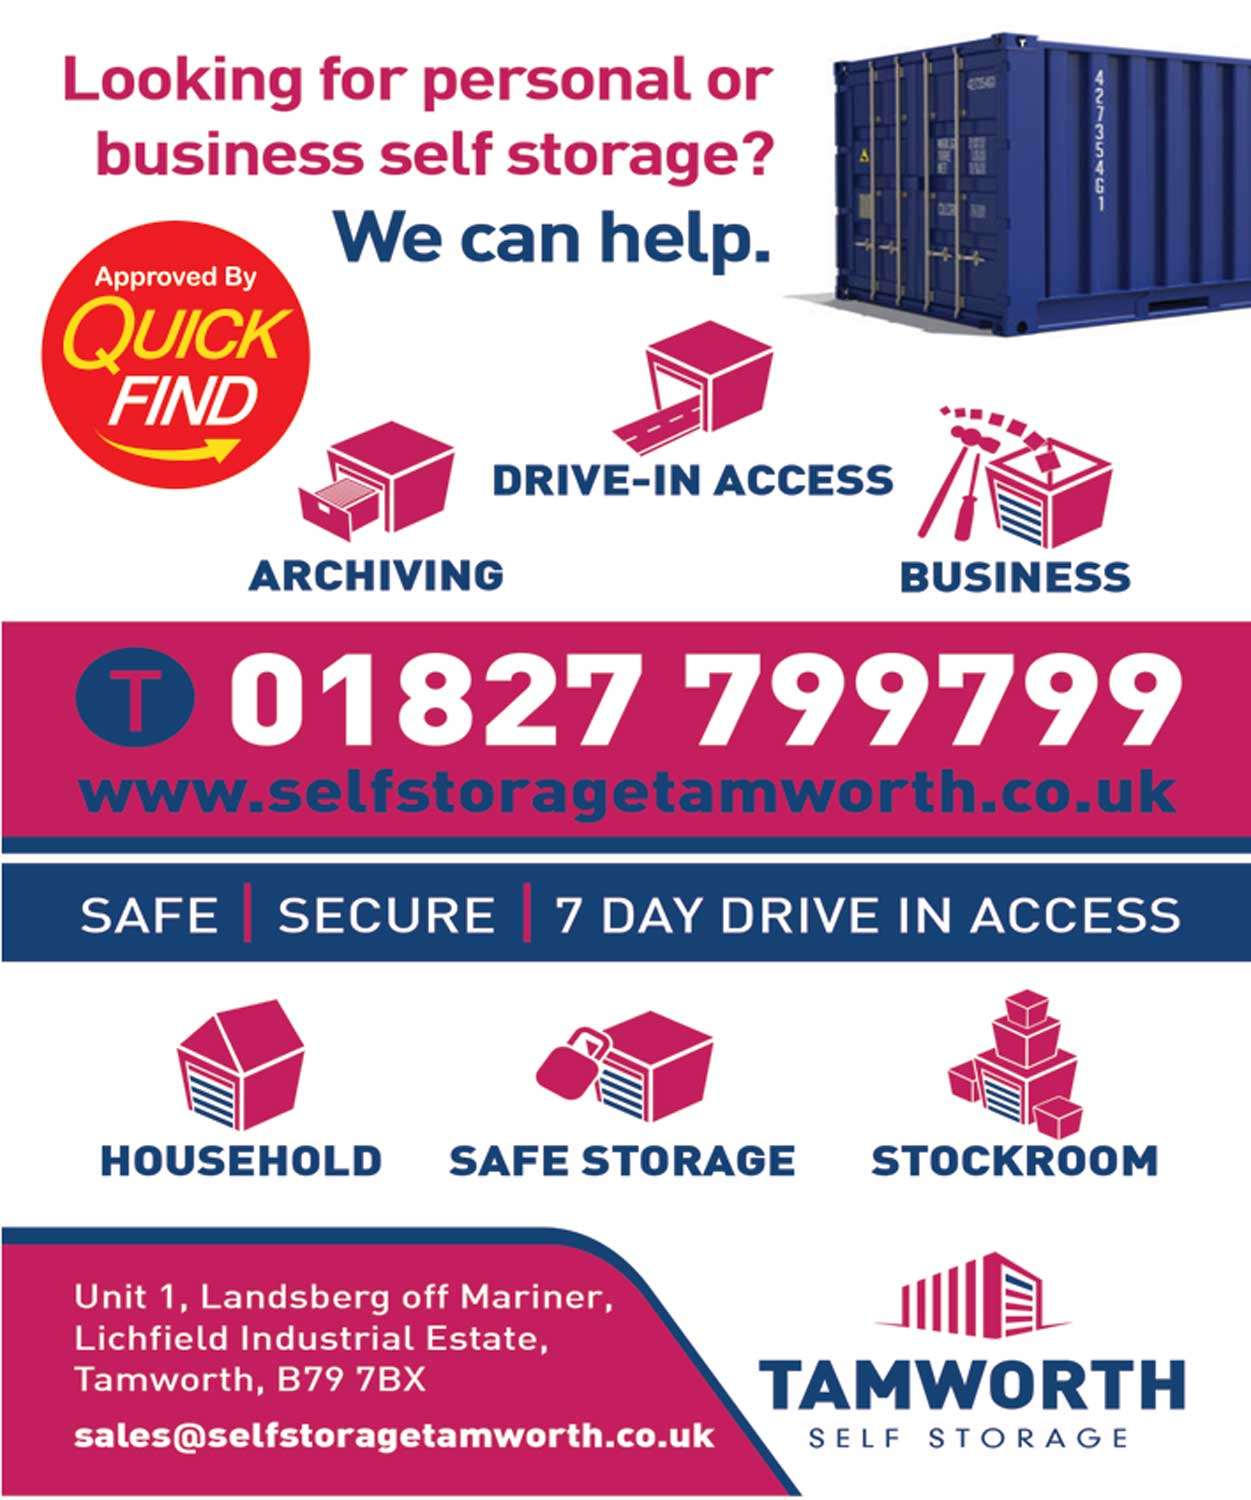 Tamworth Self Storage